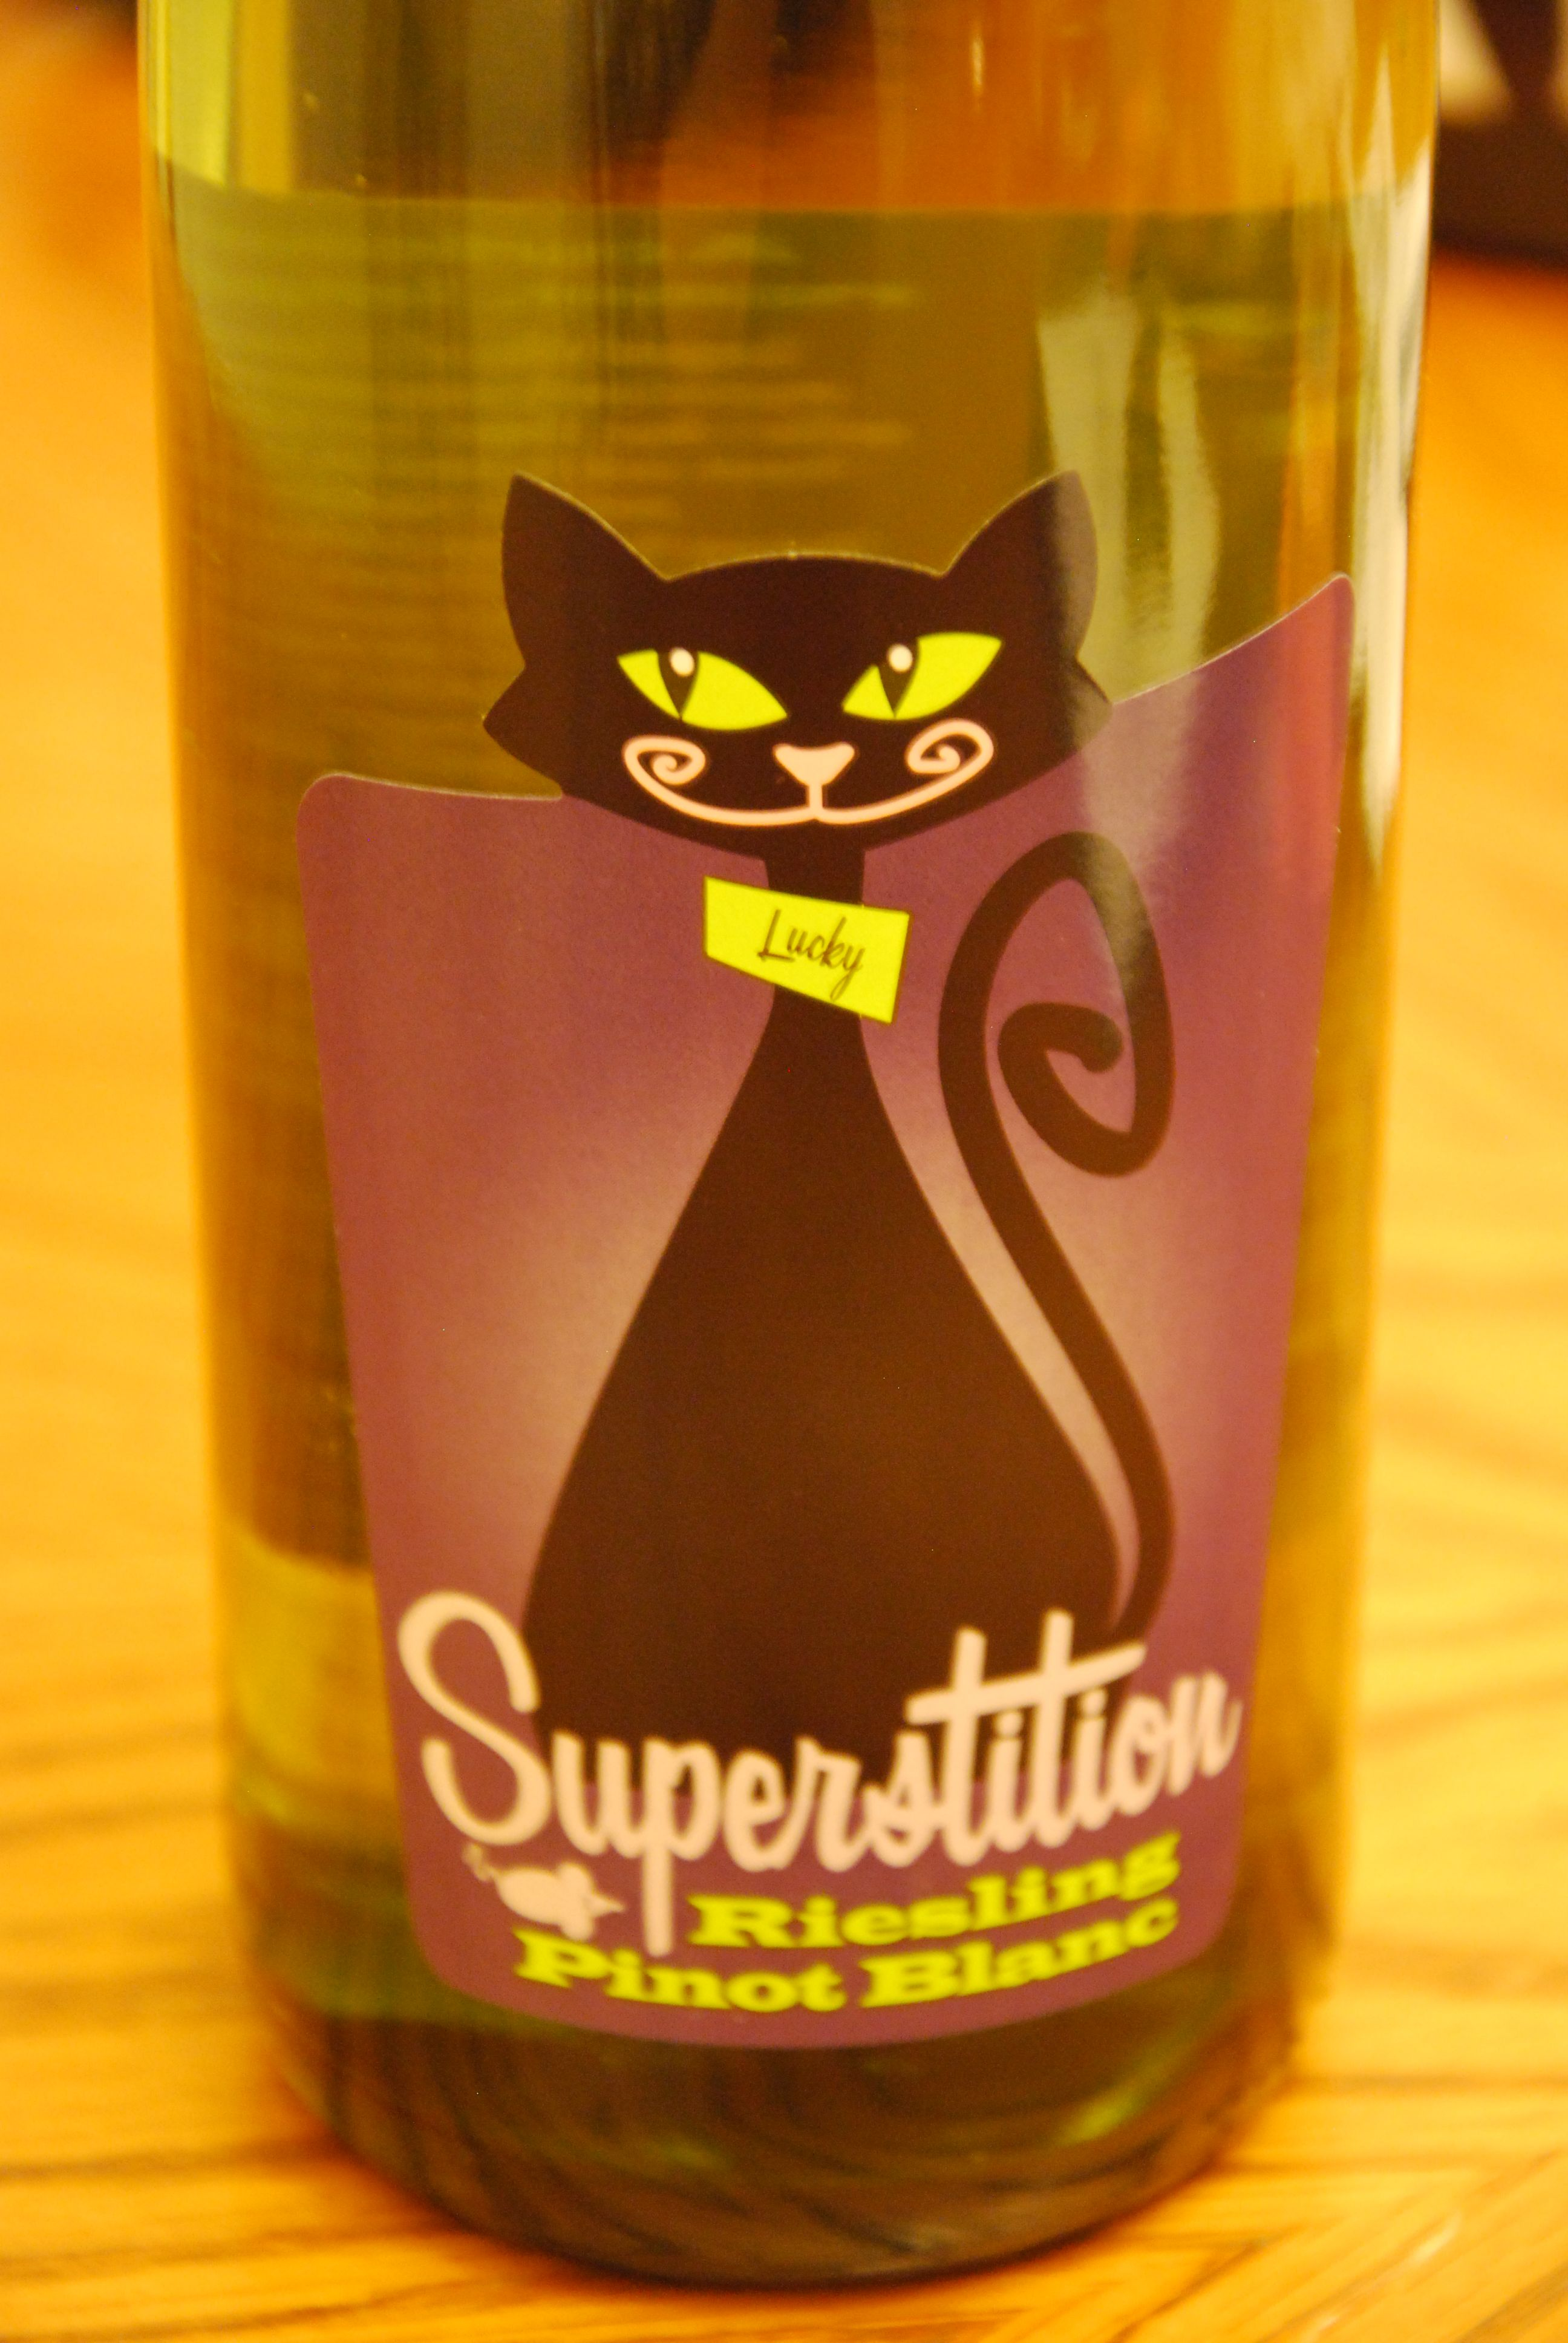 Superstition Riesling Pinot Blanc Wine Black Cat Lucky On Bottle